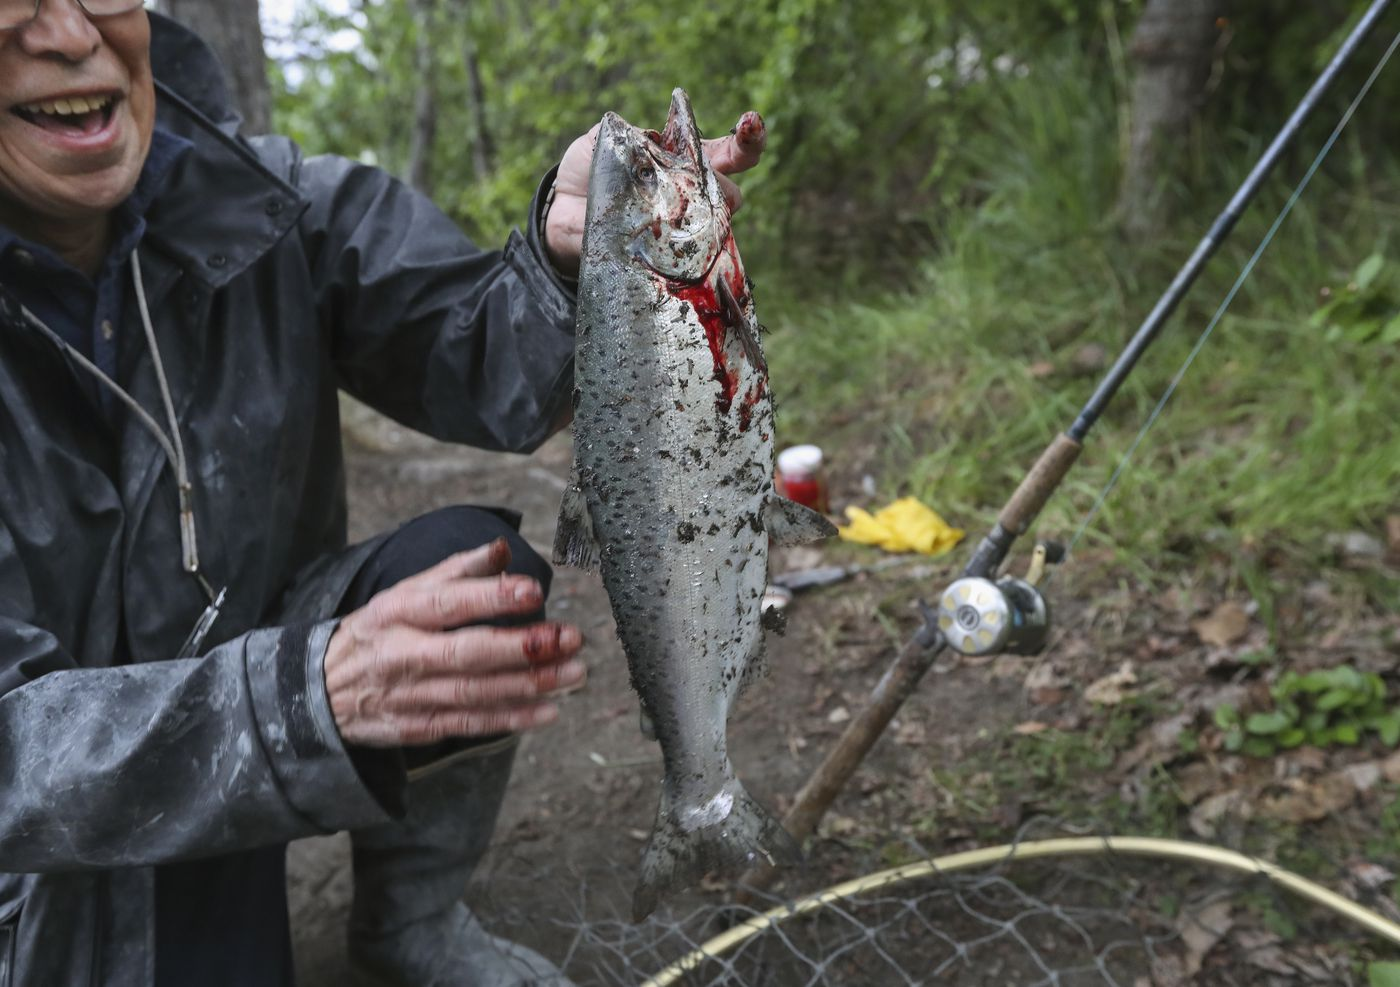 Harold Richards removes dirt and pebbles from a salmon his caught in Ship Creek in Anchorage on Wednesday, June 9, 2021. (Emily Mesner / ADN)